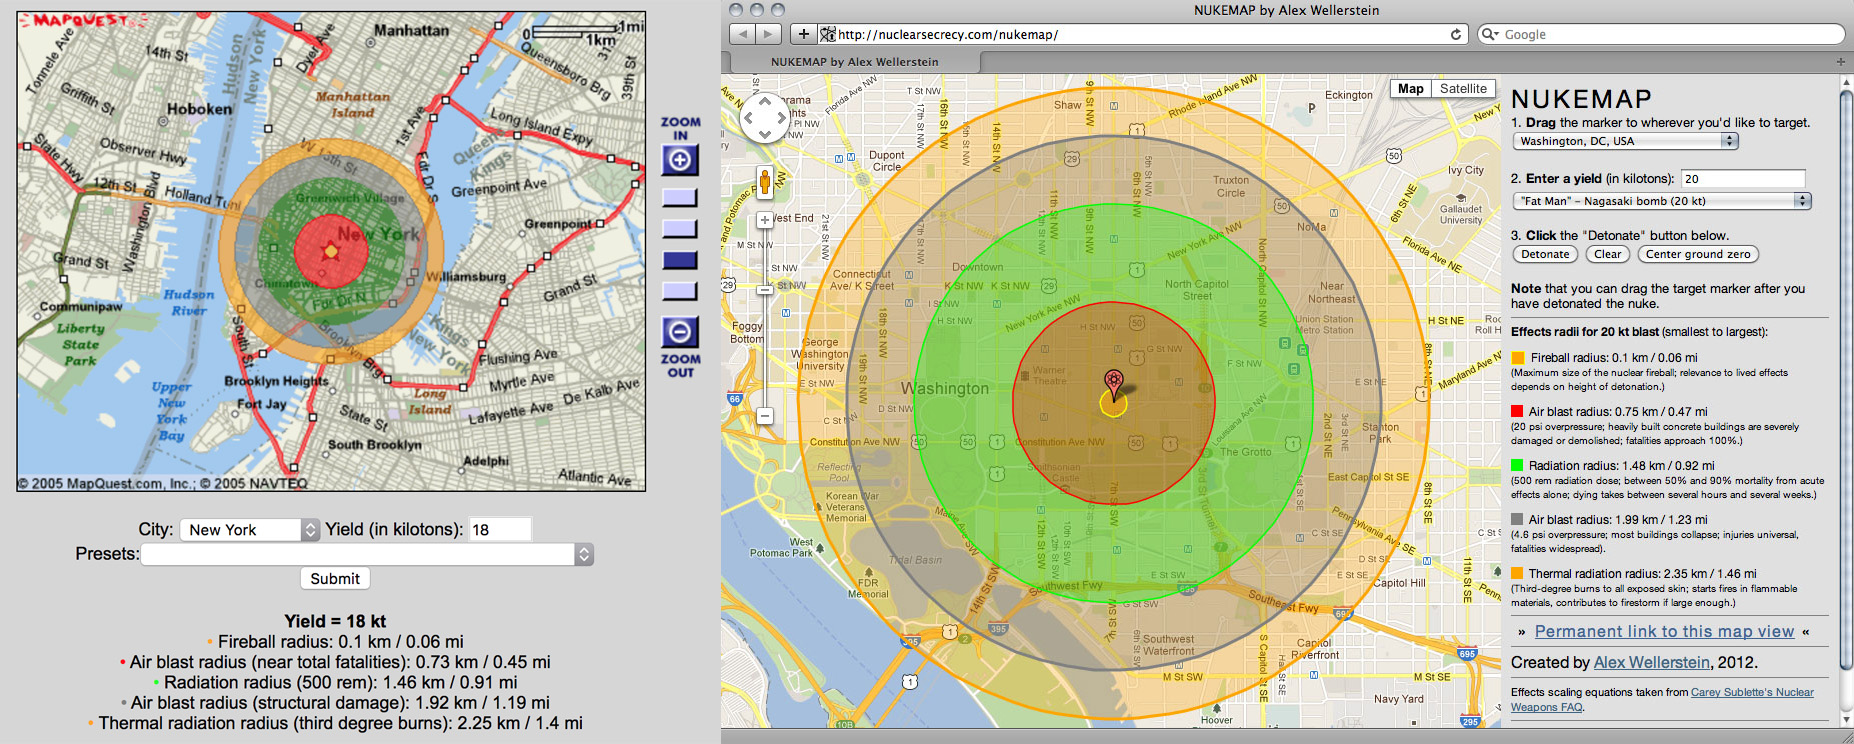 Why NUKEMAP Isn't On Google Maps Anymore